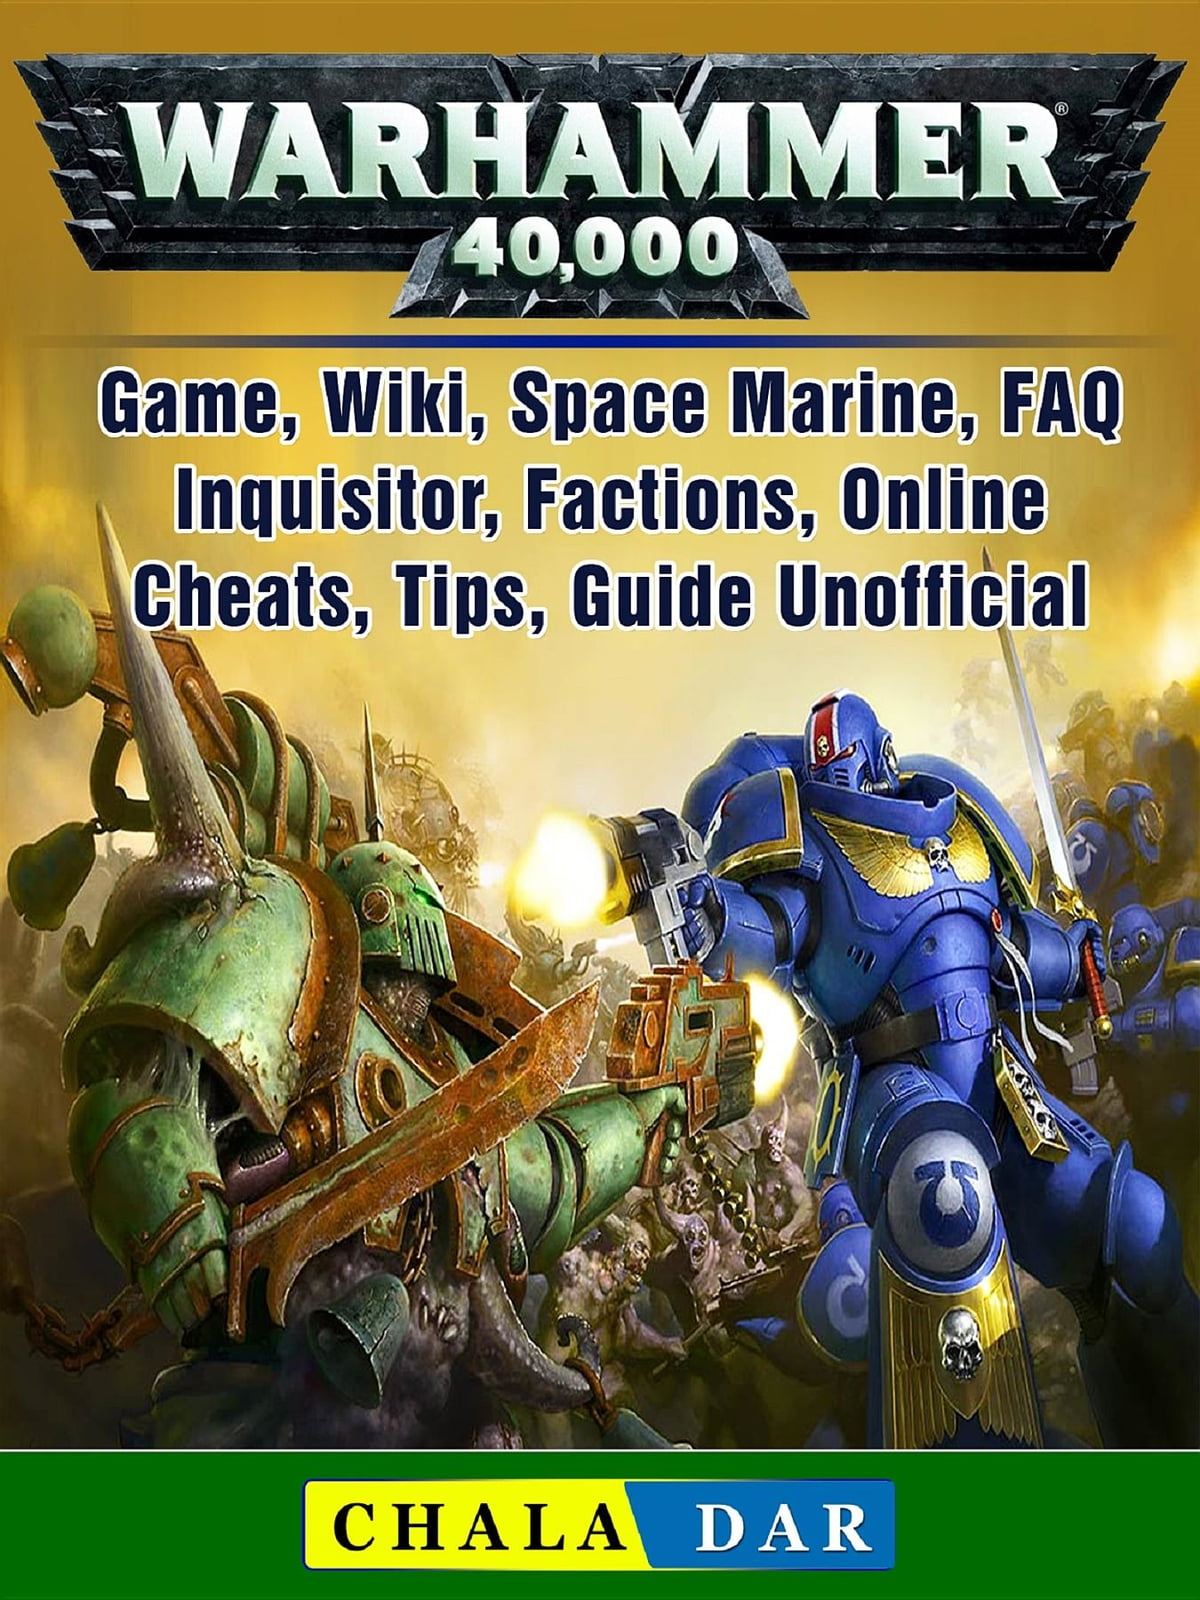 Warhammer 40,000 Game, Wiki, Space Marine, FAQ, Inquisitor, Factions,  Online, Cheats, Tips, Guide Unofficial ebook by Chala Dar - Rakuten Kobo